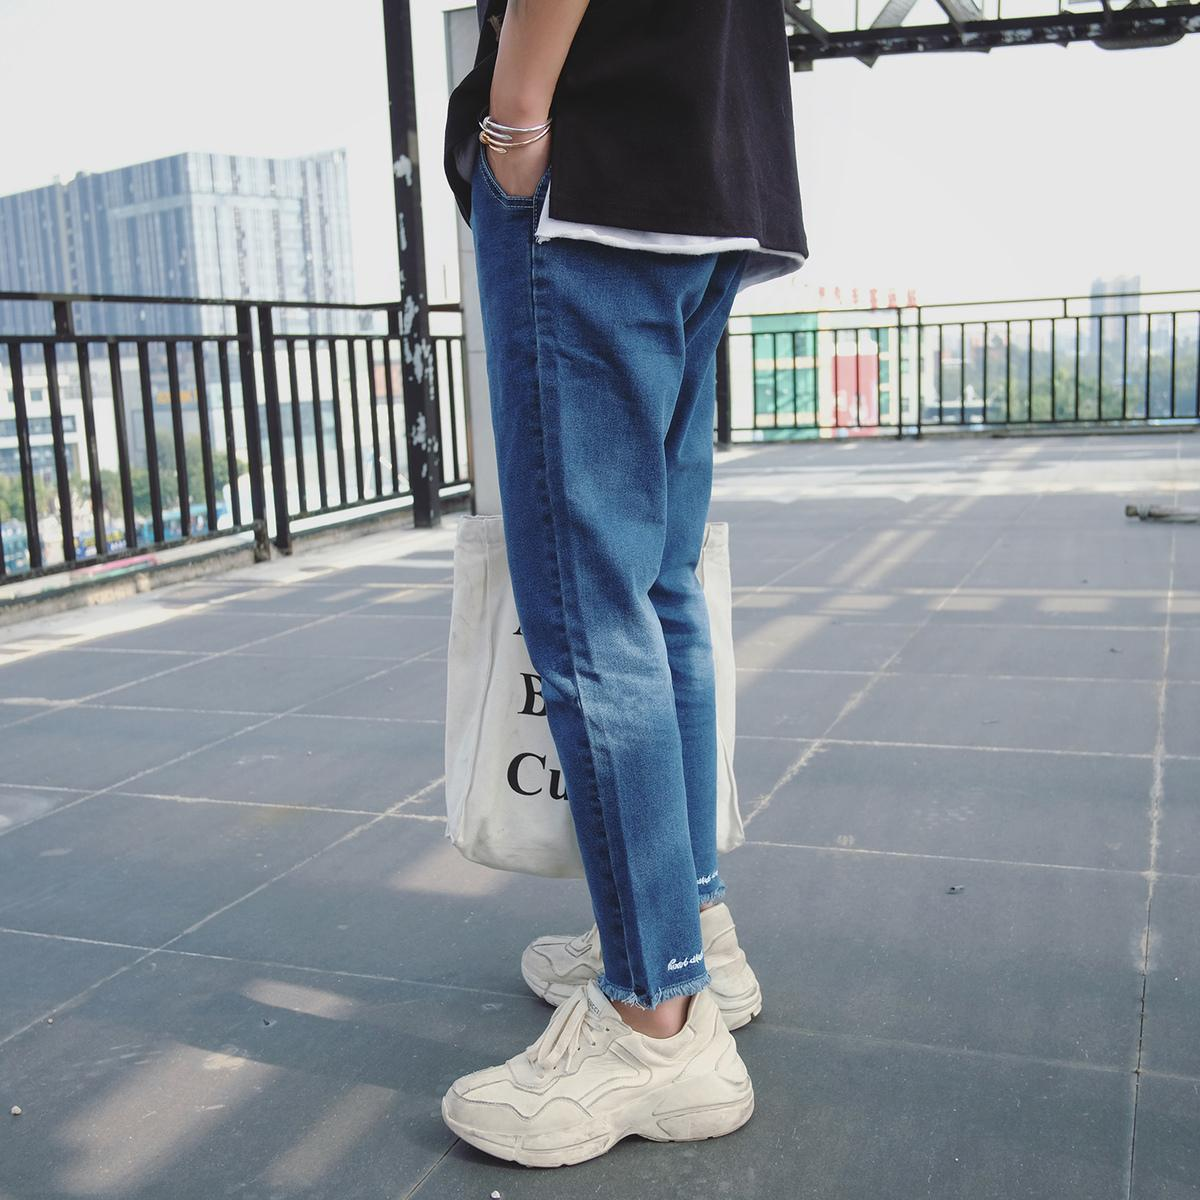 2018 Spring Newest Men's Fashion Classic Jeans Embroidery Skinny Stretch Fit Slim Pants Blue Casual Denim Trousers Size 28-34